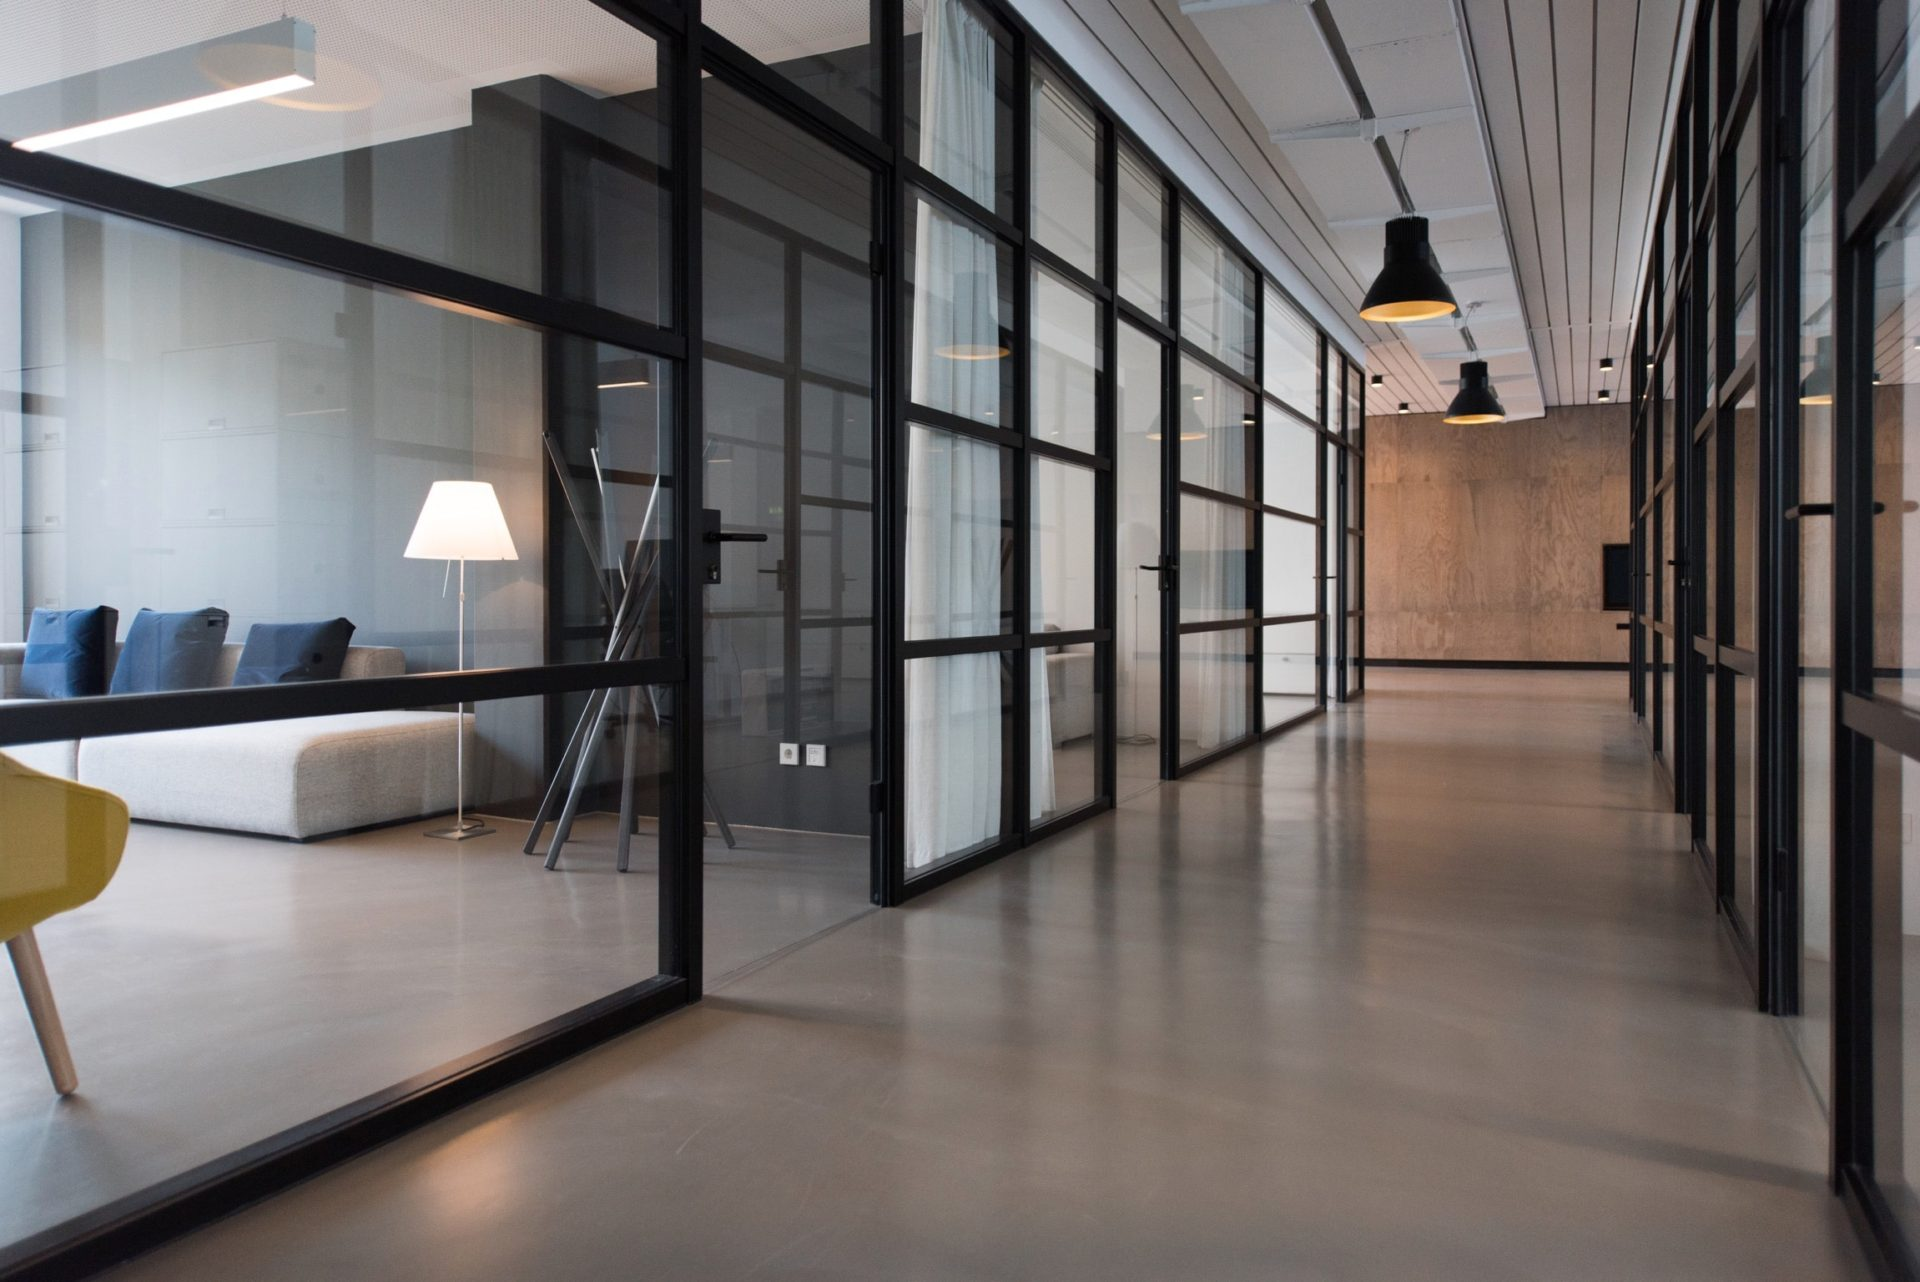 Commercial property with underfloor heating